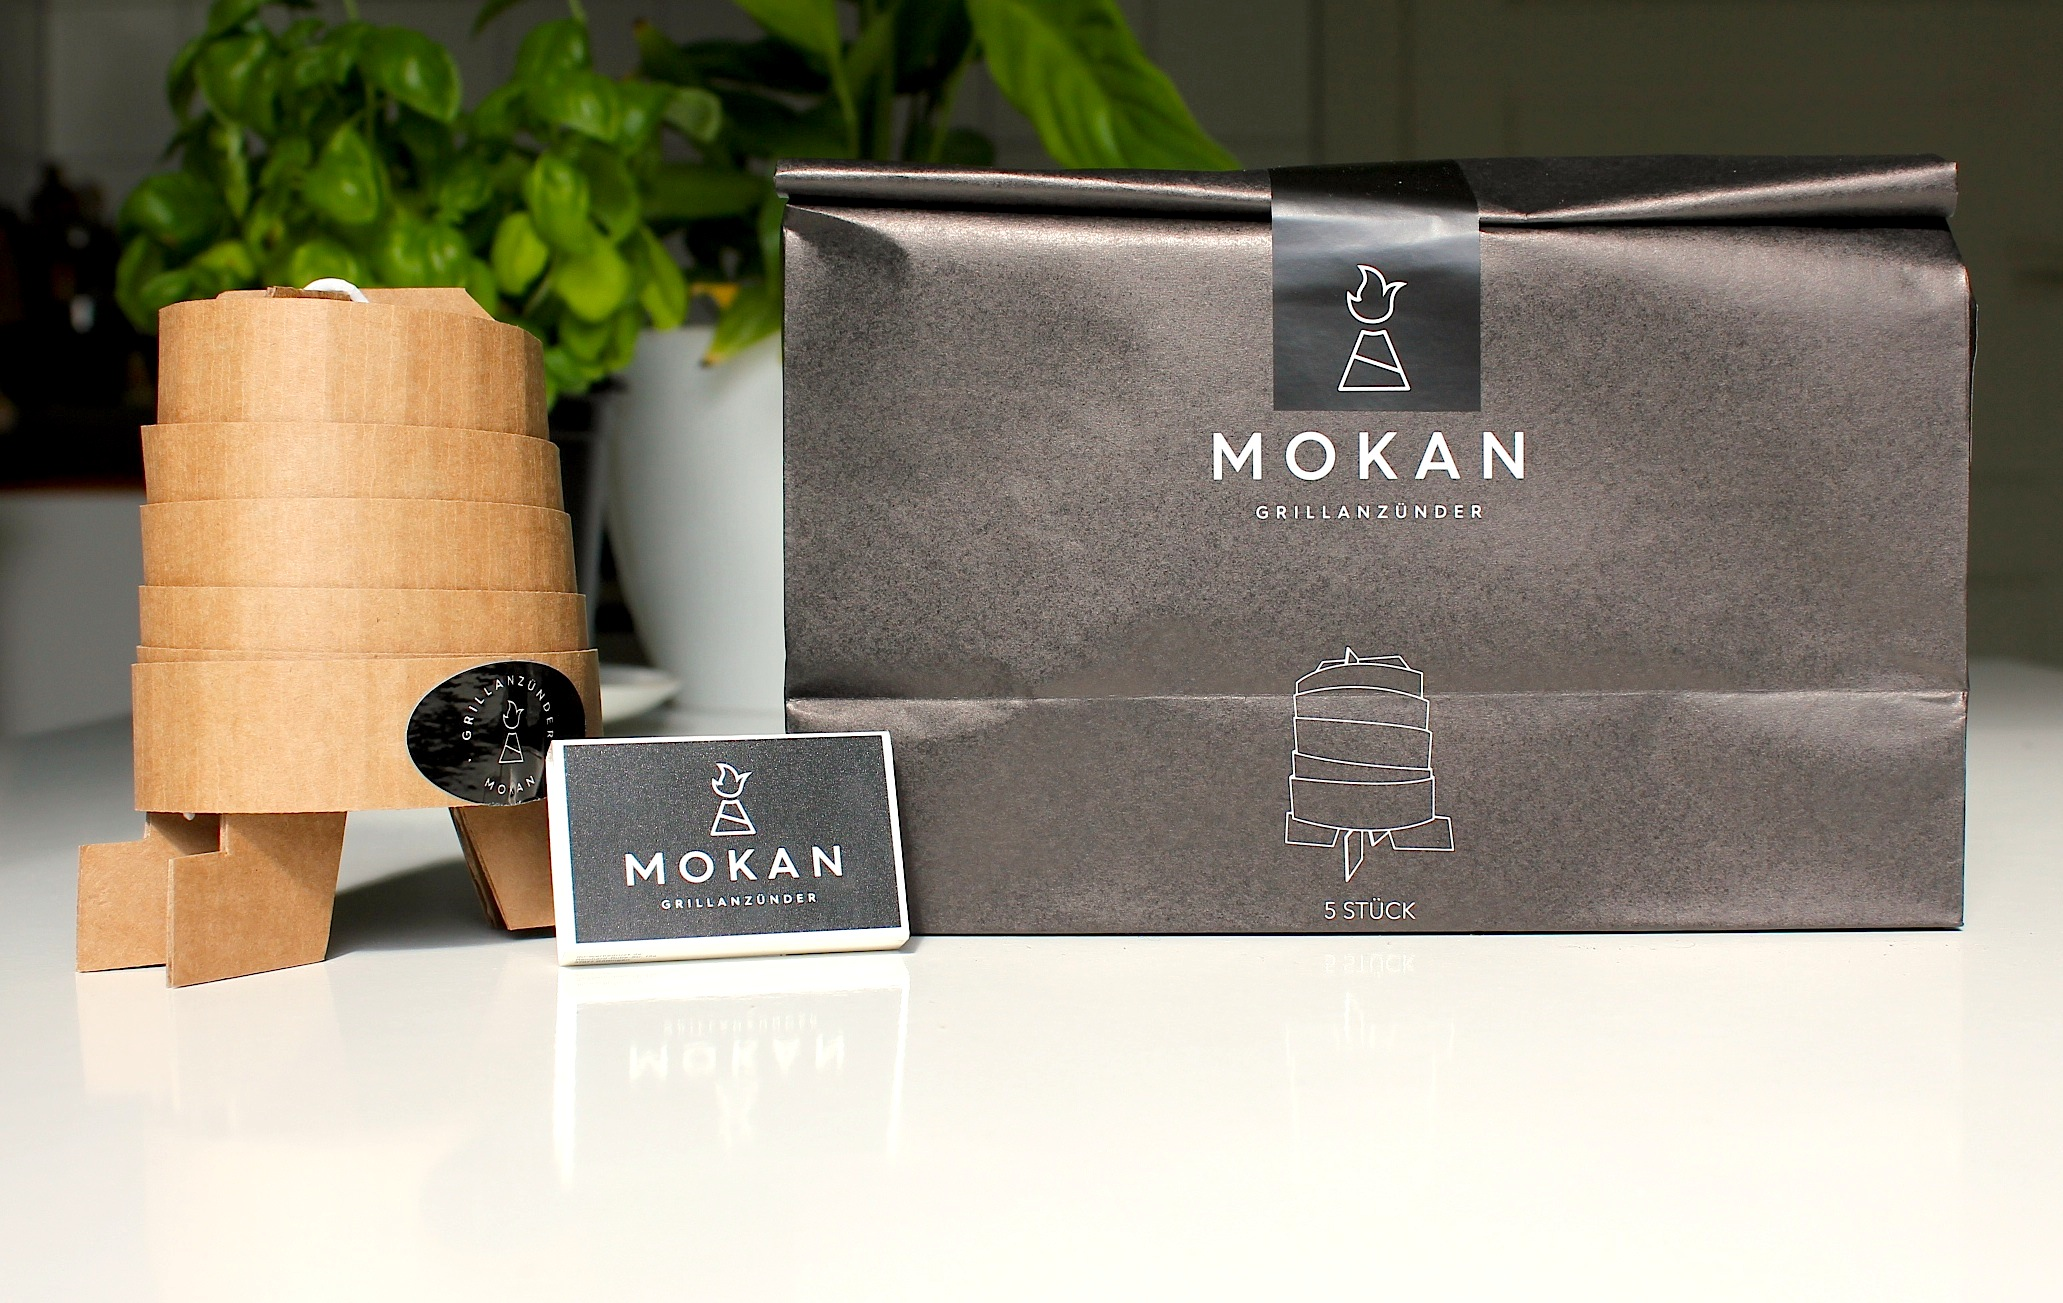 Unser Favorit: Der innovative Mokan® Grillkamin